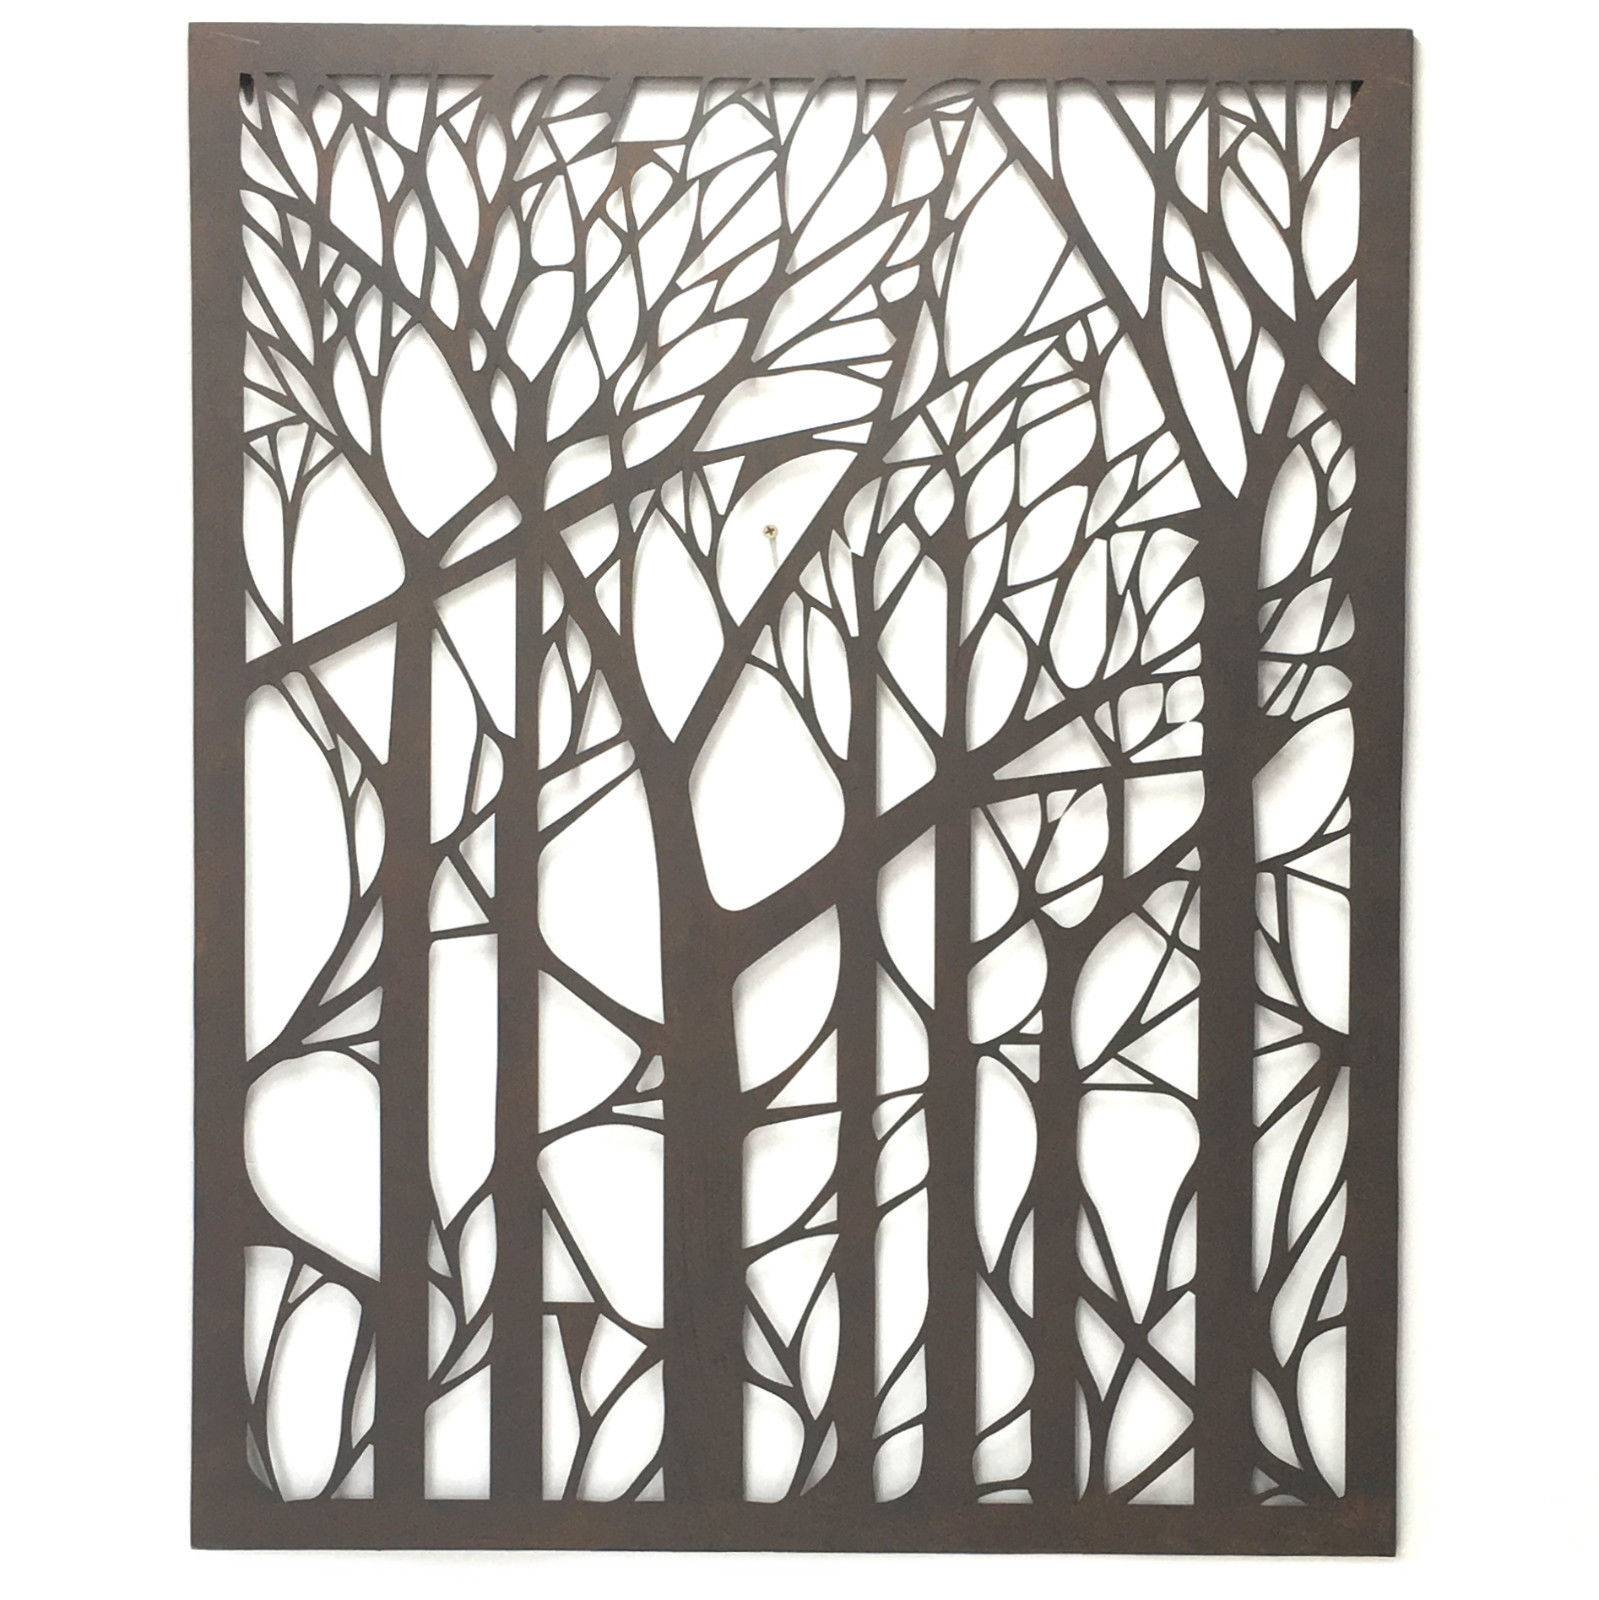 Wall Art Designs: Outdoor Wall Art Metal Tree Metal Wall Art With Regard To Current Branches Metal Wall Art (View 16 of 20)